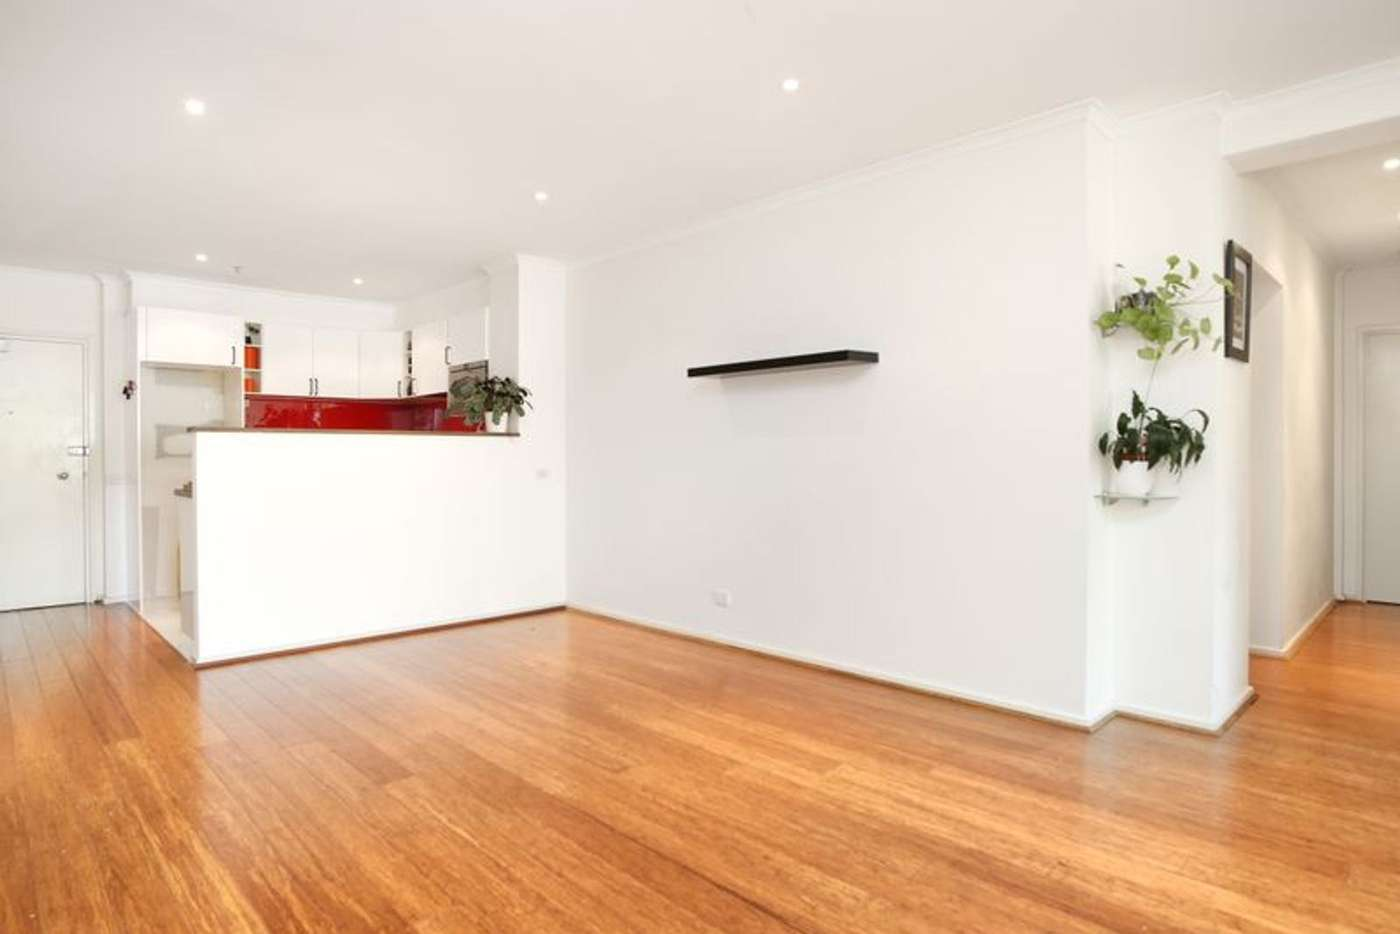 Main view of Homely apartment listing, 6/148 Wells Street, South Melbourne VIC 3205